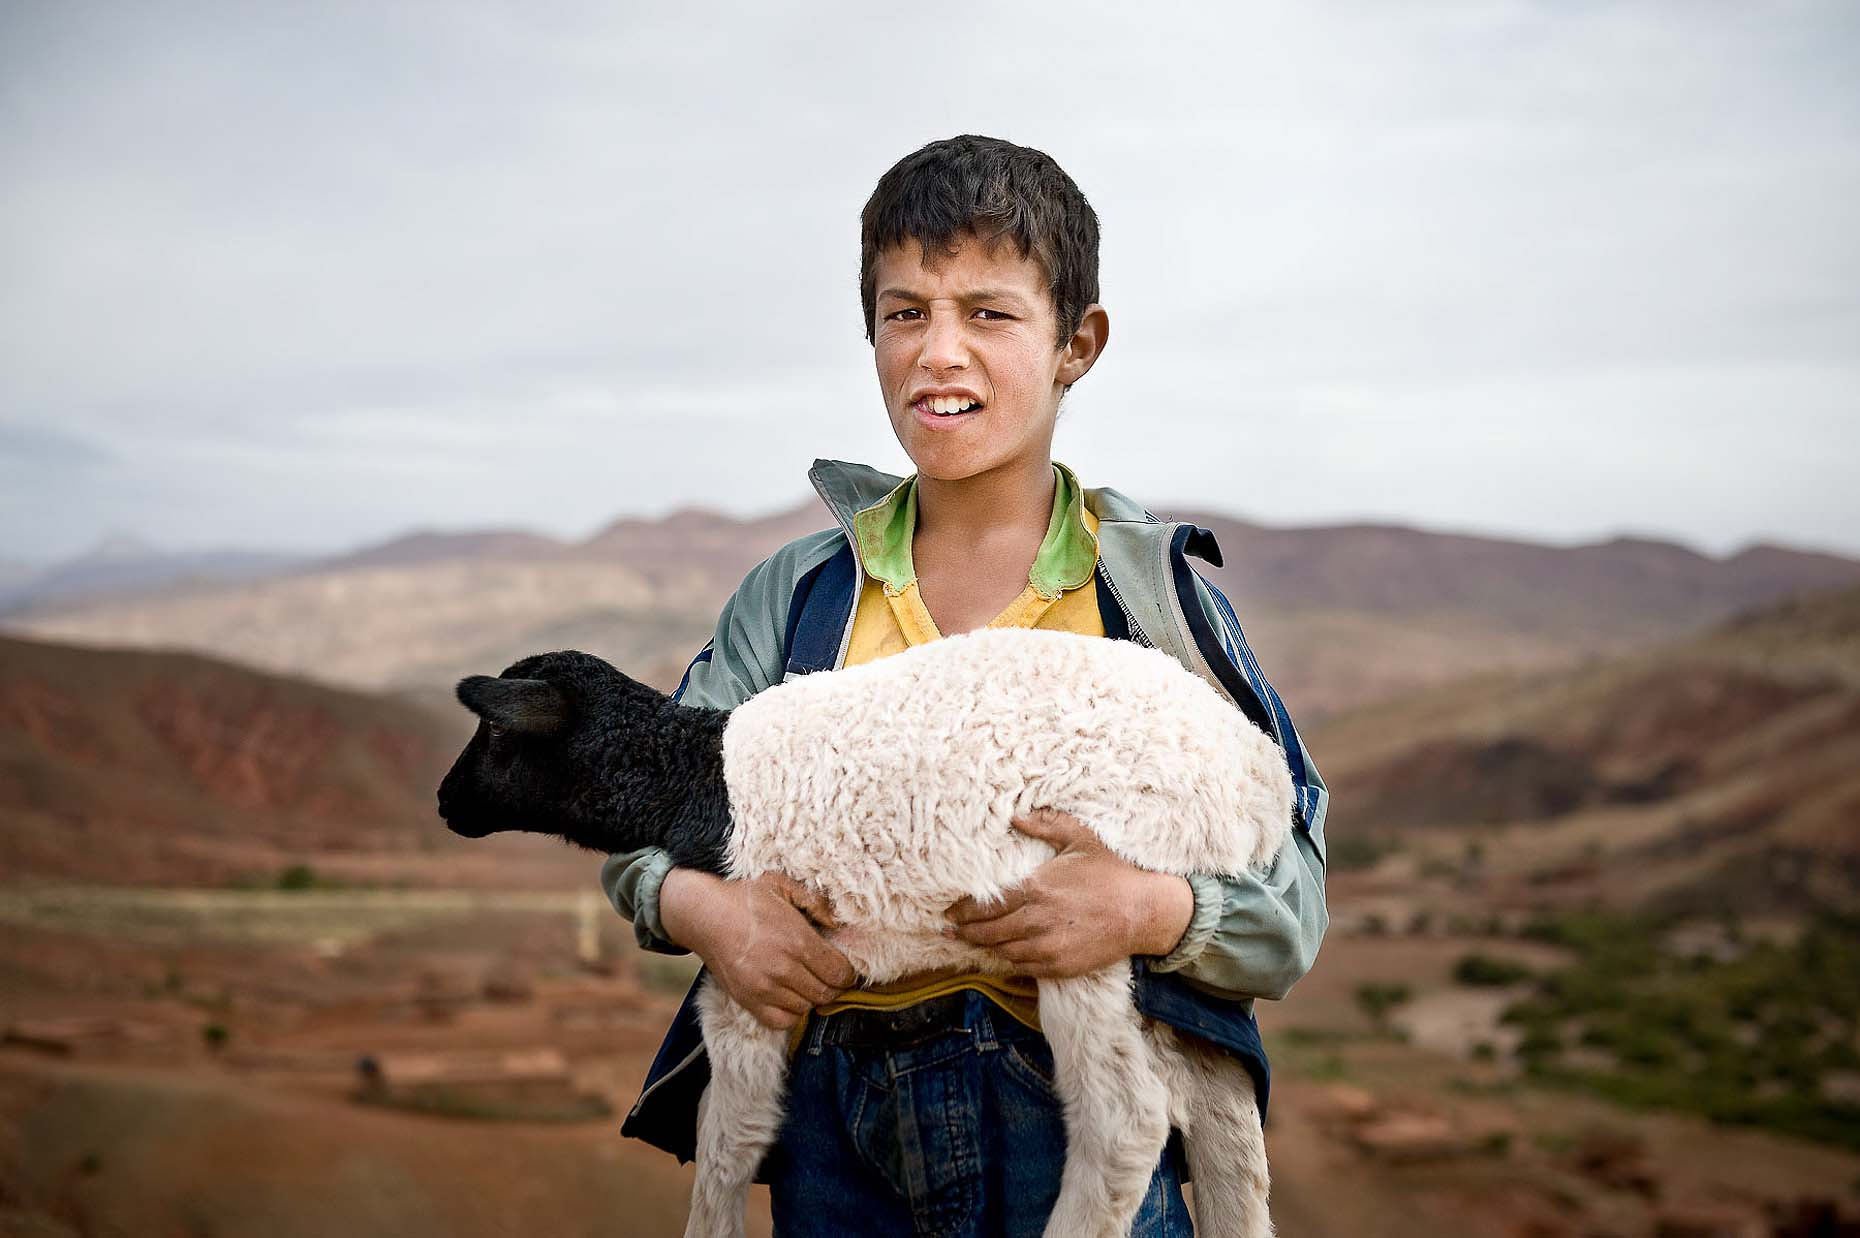 travel-portrait-boy-ouarzazate-morocco-04